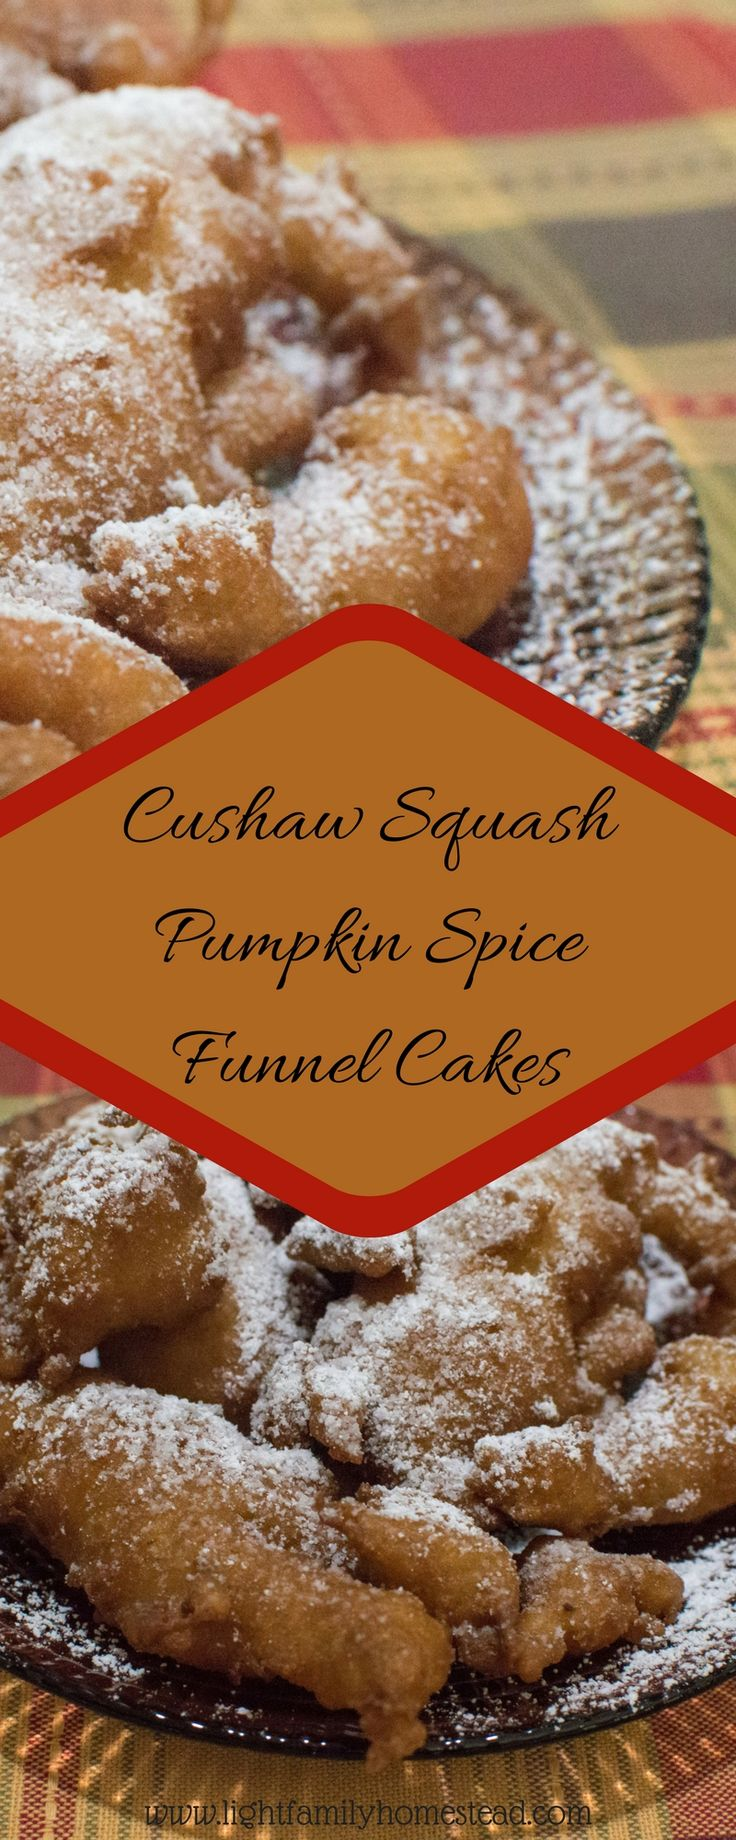 Cushaw Squash Pumpkin Spice Funnel Cakes-'Tis the fall season with all of its wonderful flavors! My funnel cake recipe is  sure to be a family favorite just as it has for ours. With cushaw squash and pumpkin spice this recipe rings in the fall season. Learn how to make this recipe and many more by visiting our blog at www.lightfamilyhomestead.com. #pumpkinspice #funnelcake #fallrecipes #cushawsquash #desserts #HomemadeRecipes #homesteadrecipes #lightfamilyhomestead